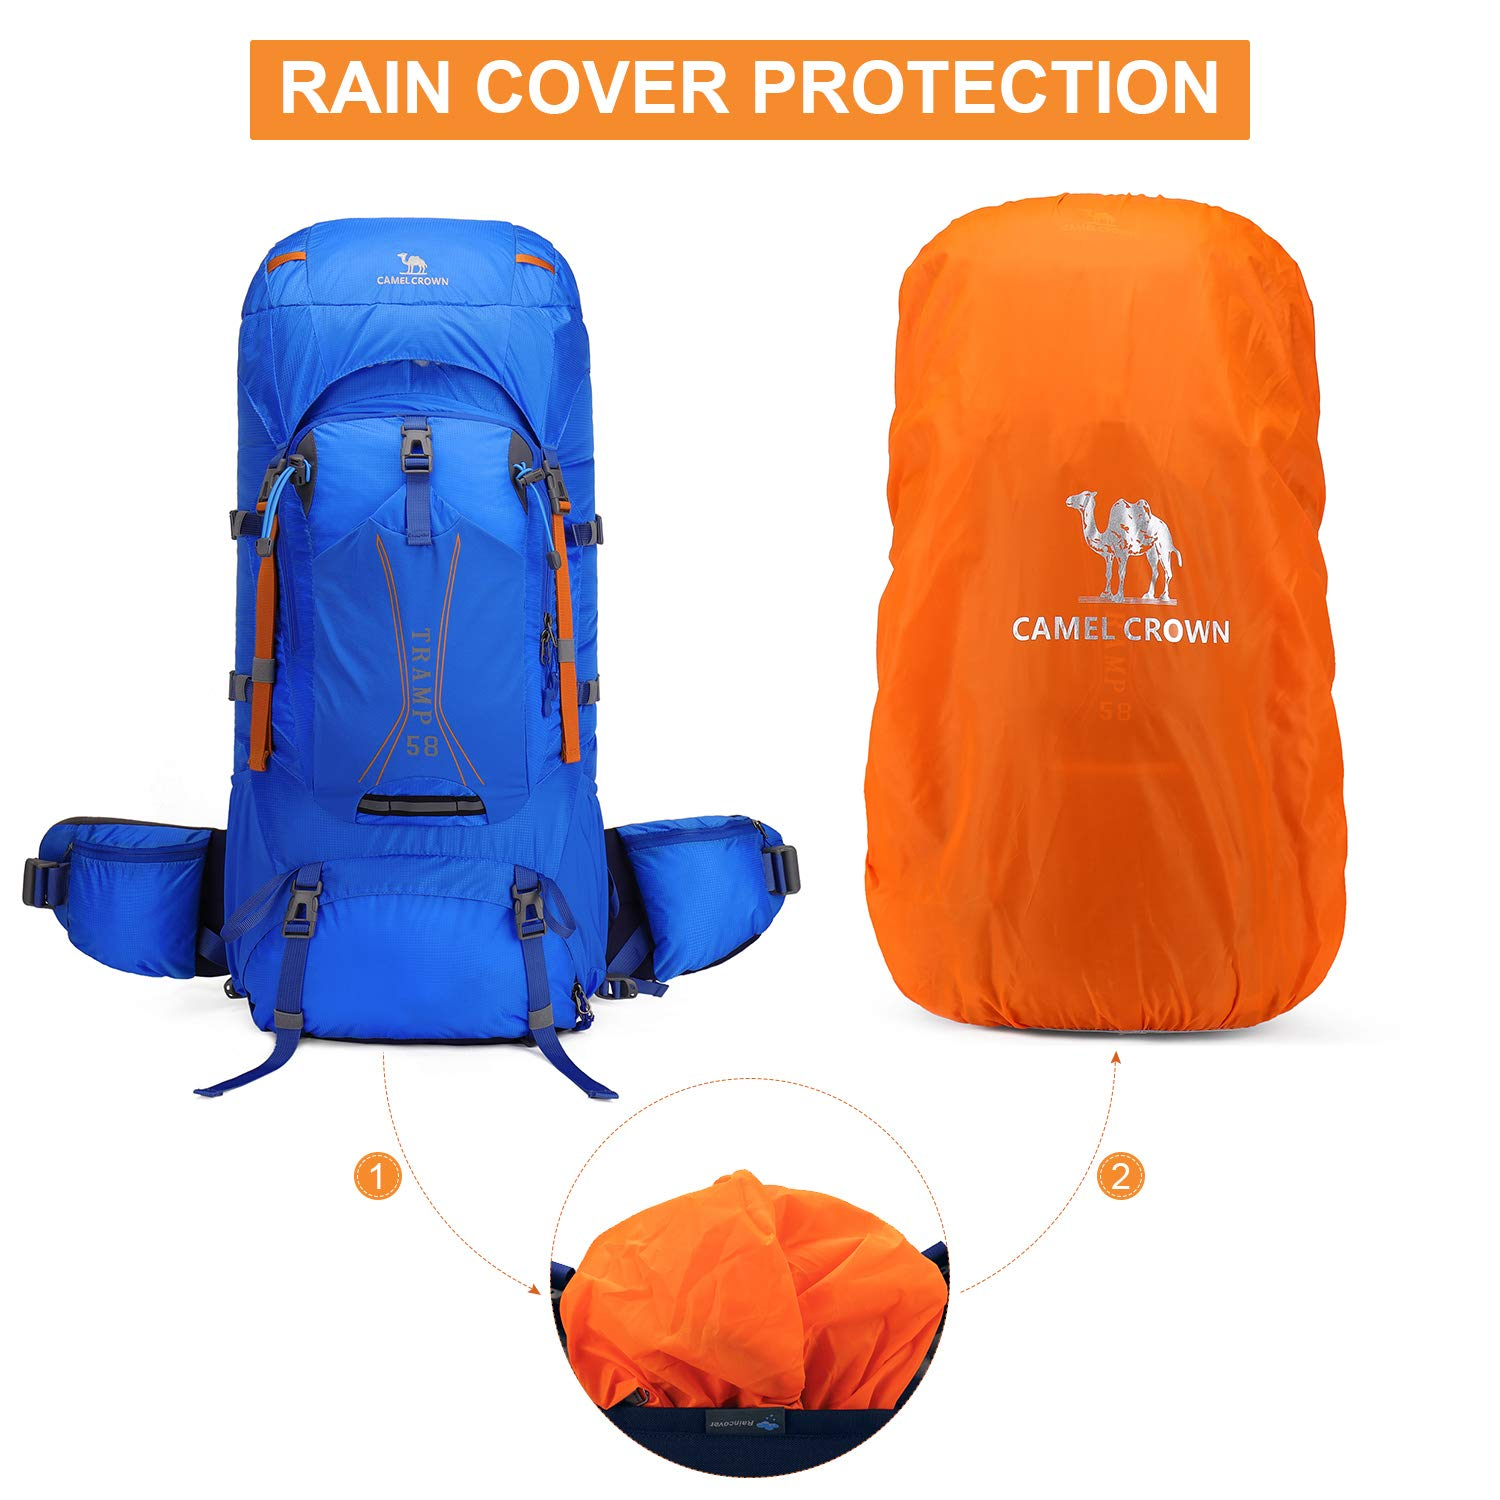 CAMEL CROWN 58L Internal Frame Hiking Backpack Hydration Backpack for Travel Trekking Hiking Camping Climbing Outdoor with Rain Cover